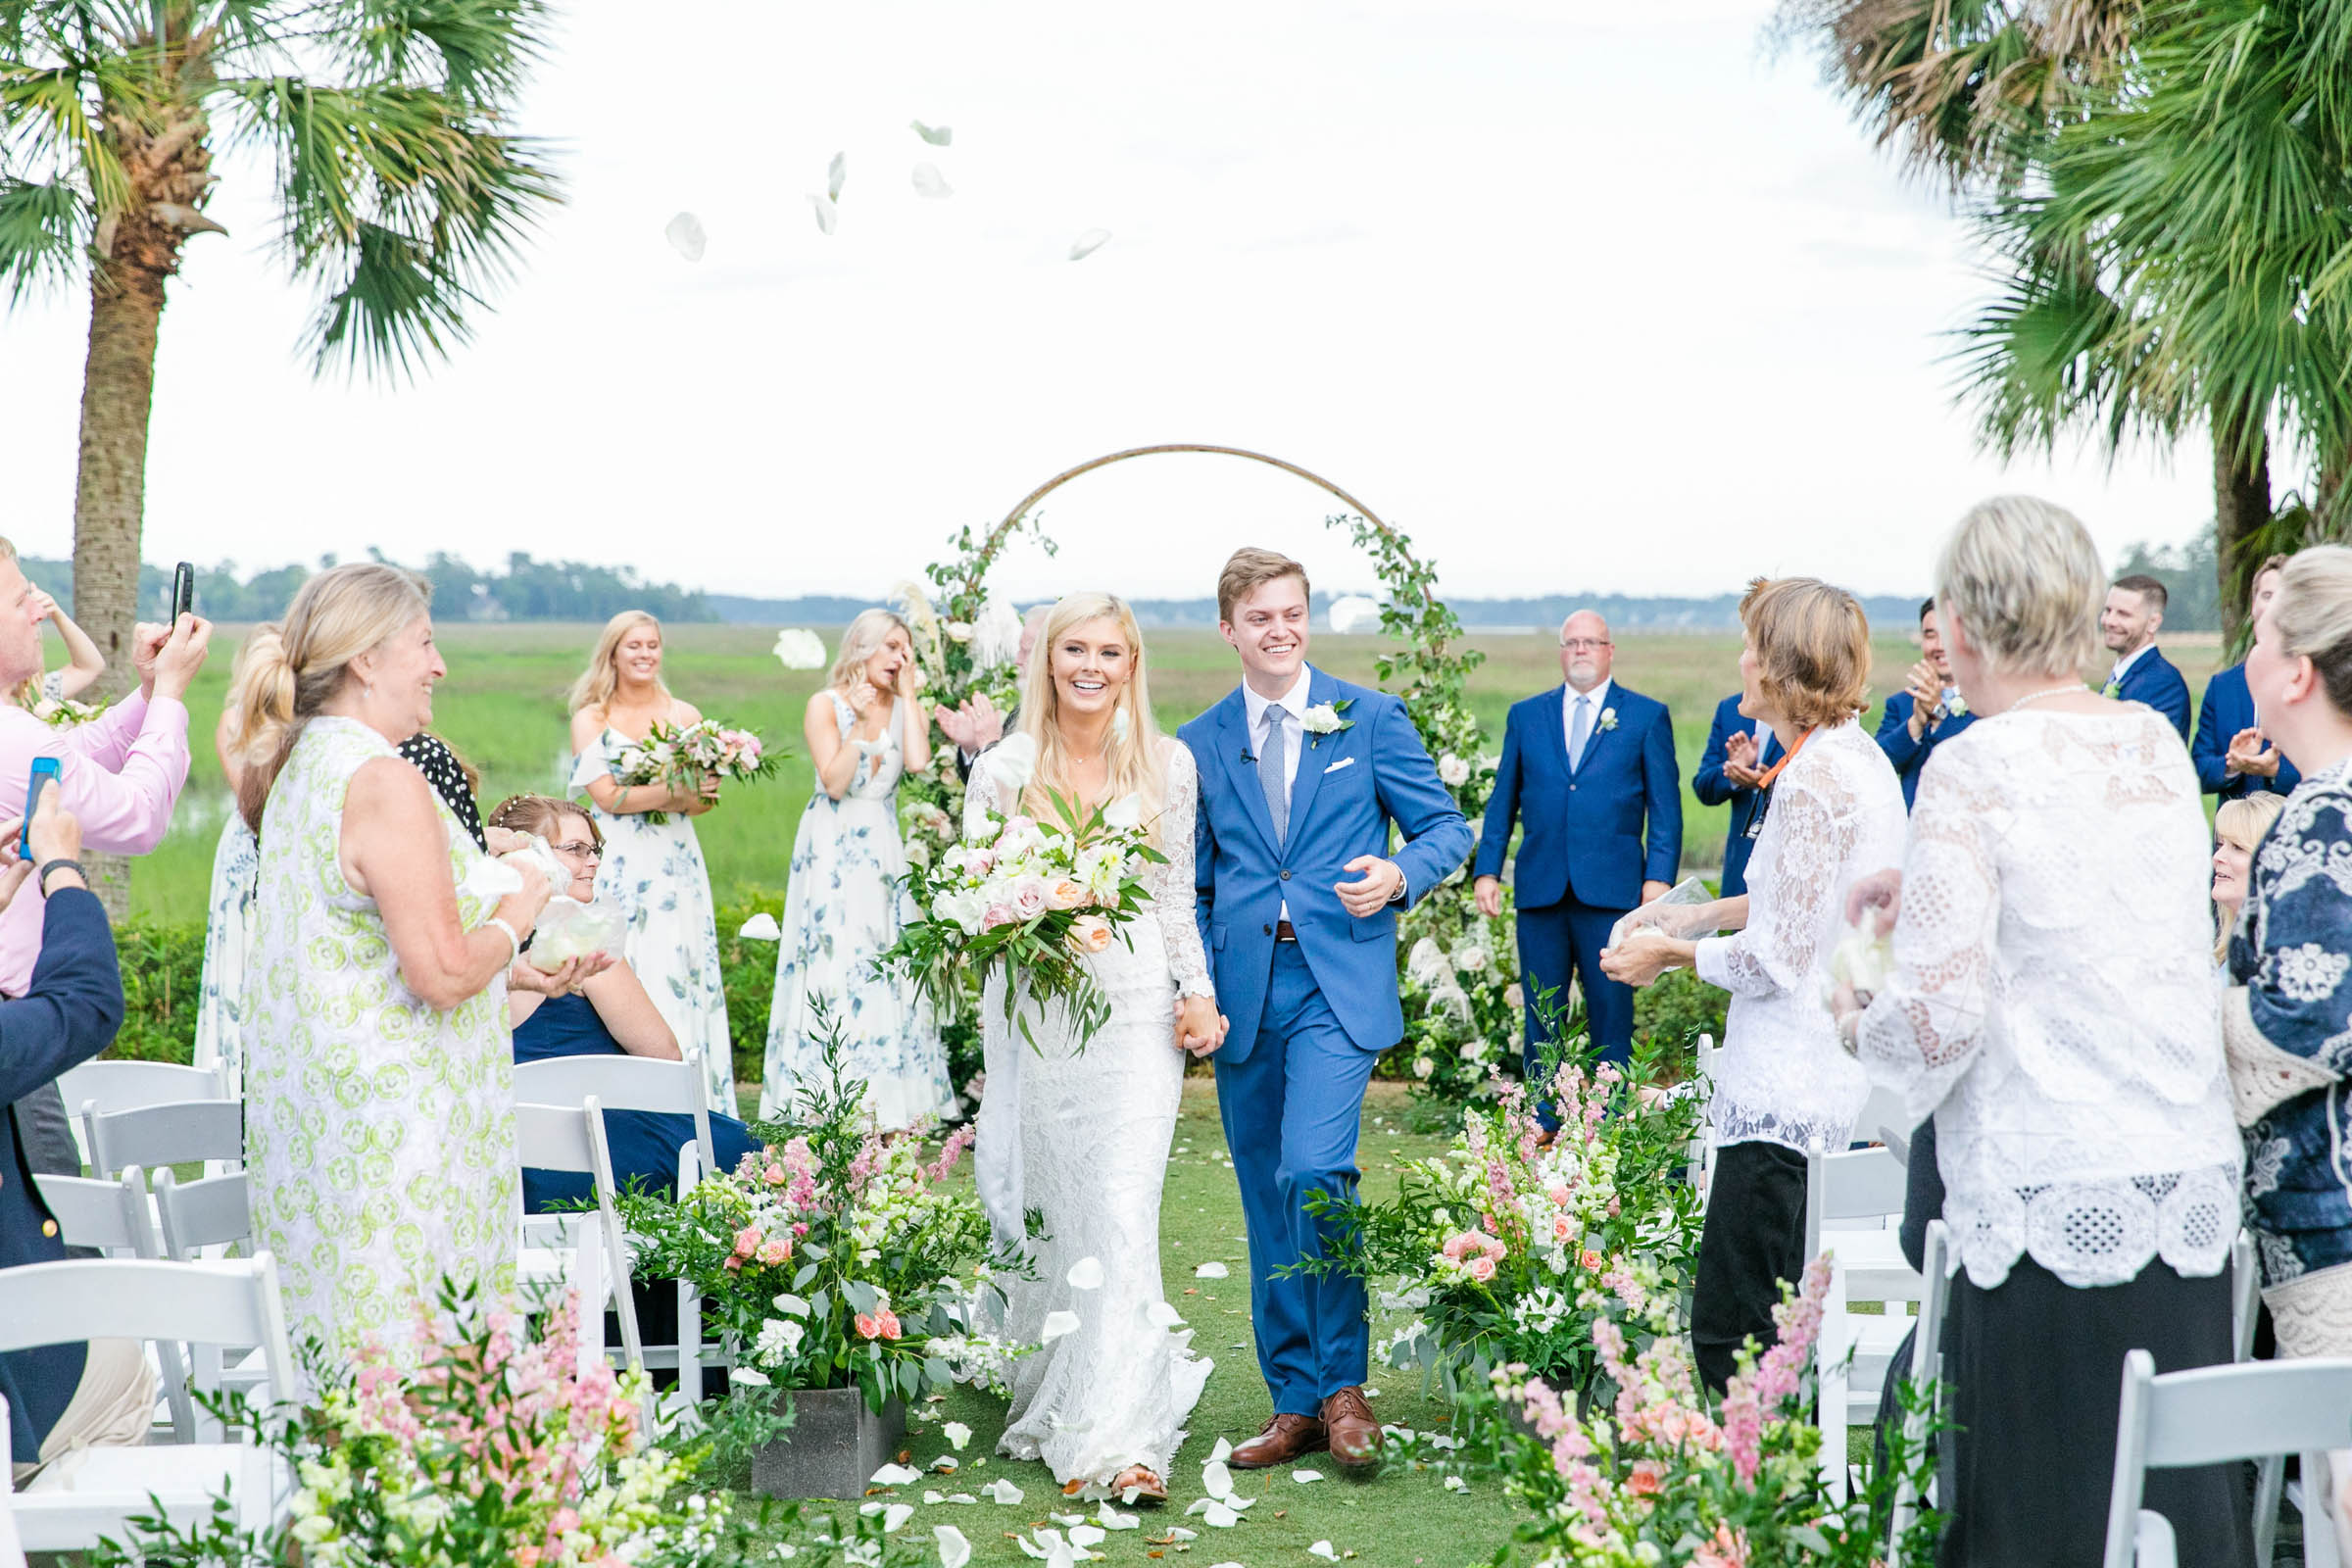 Bride and groom outdoor recessional among the flowers - photo by Dana Cubbage Weddings